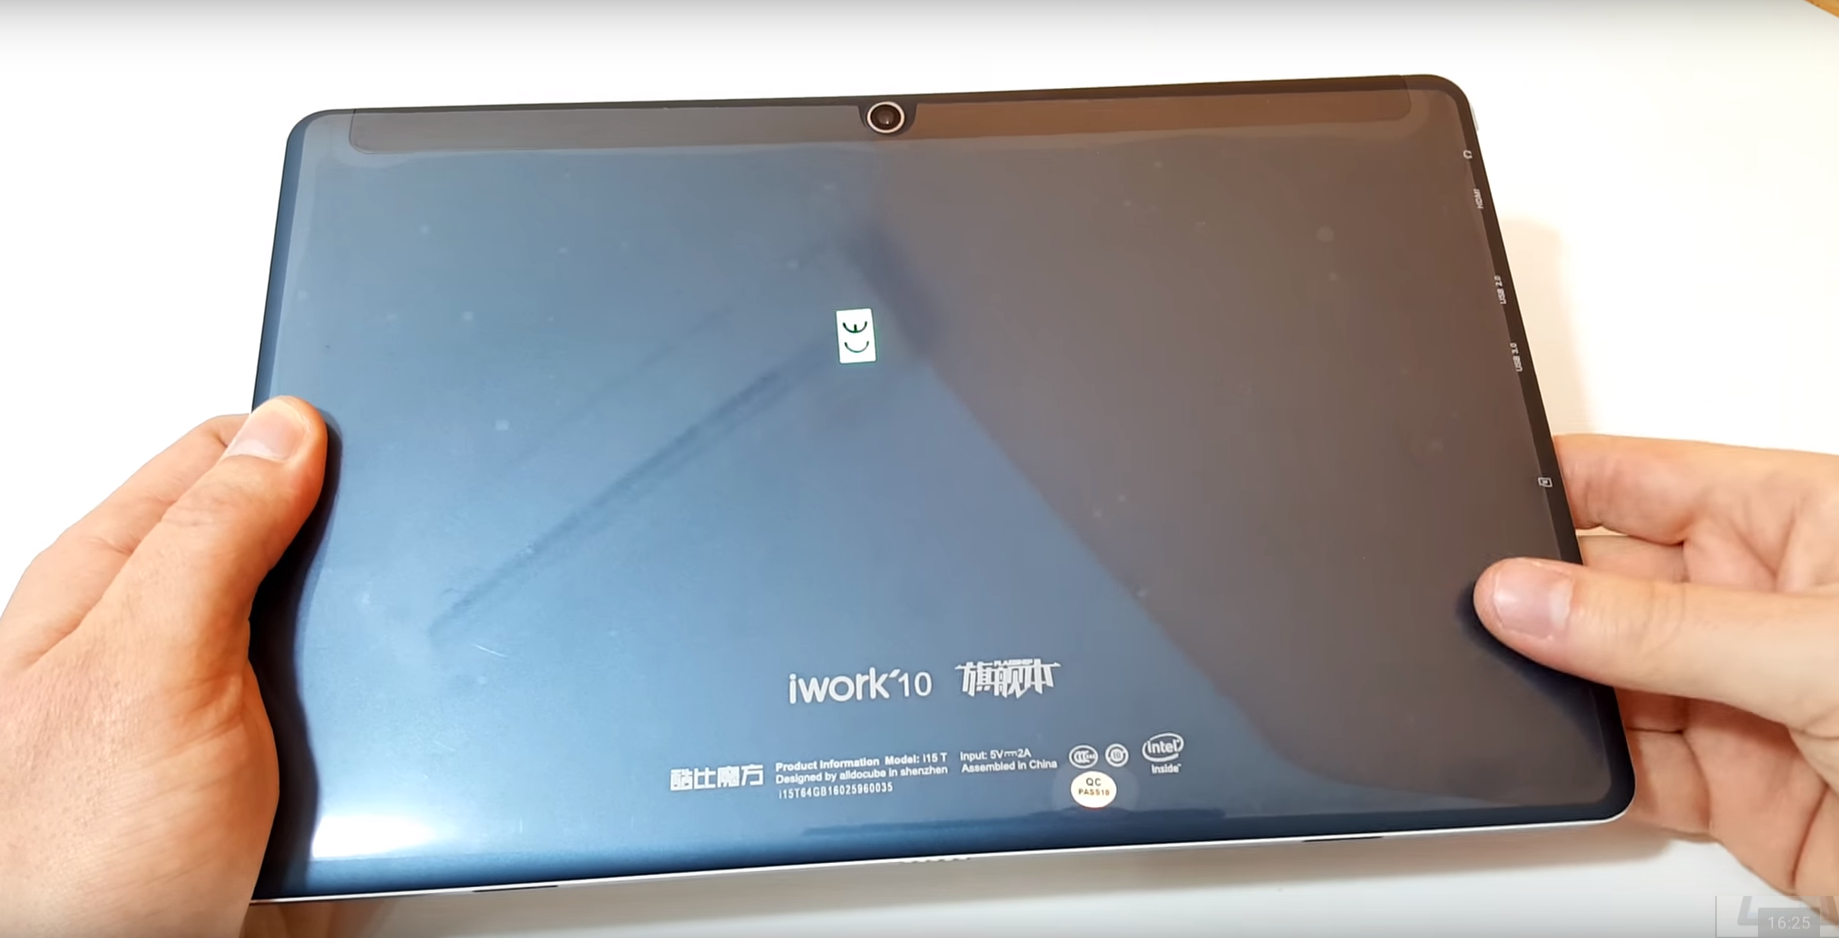 Cube iWork 10 tablet, held in hands, back side, white background.